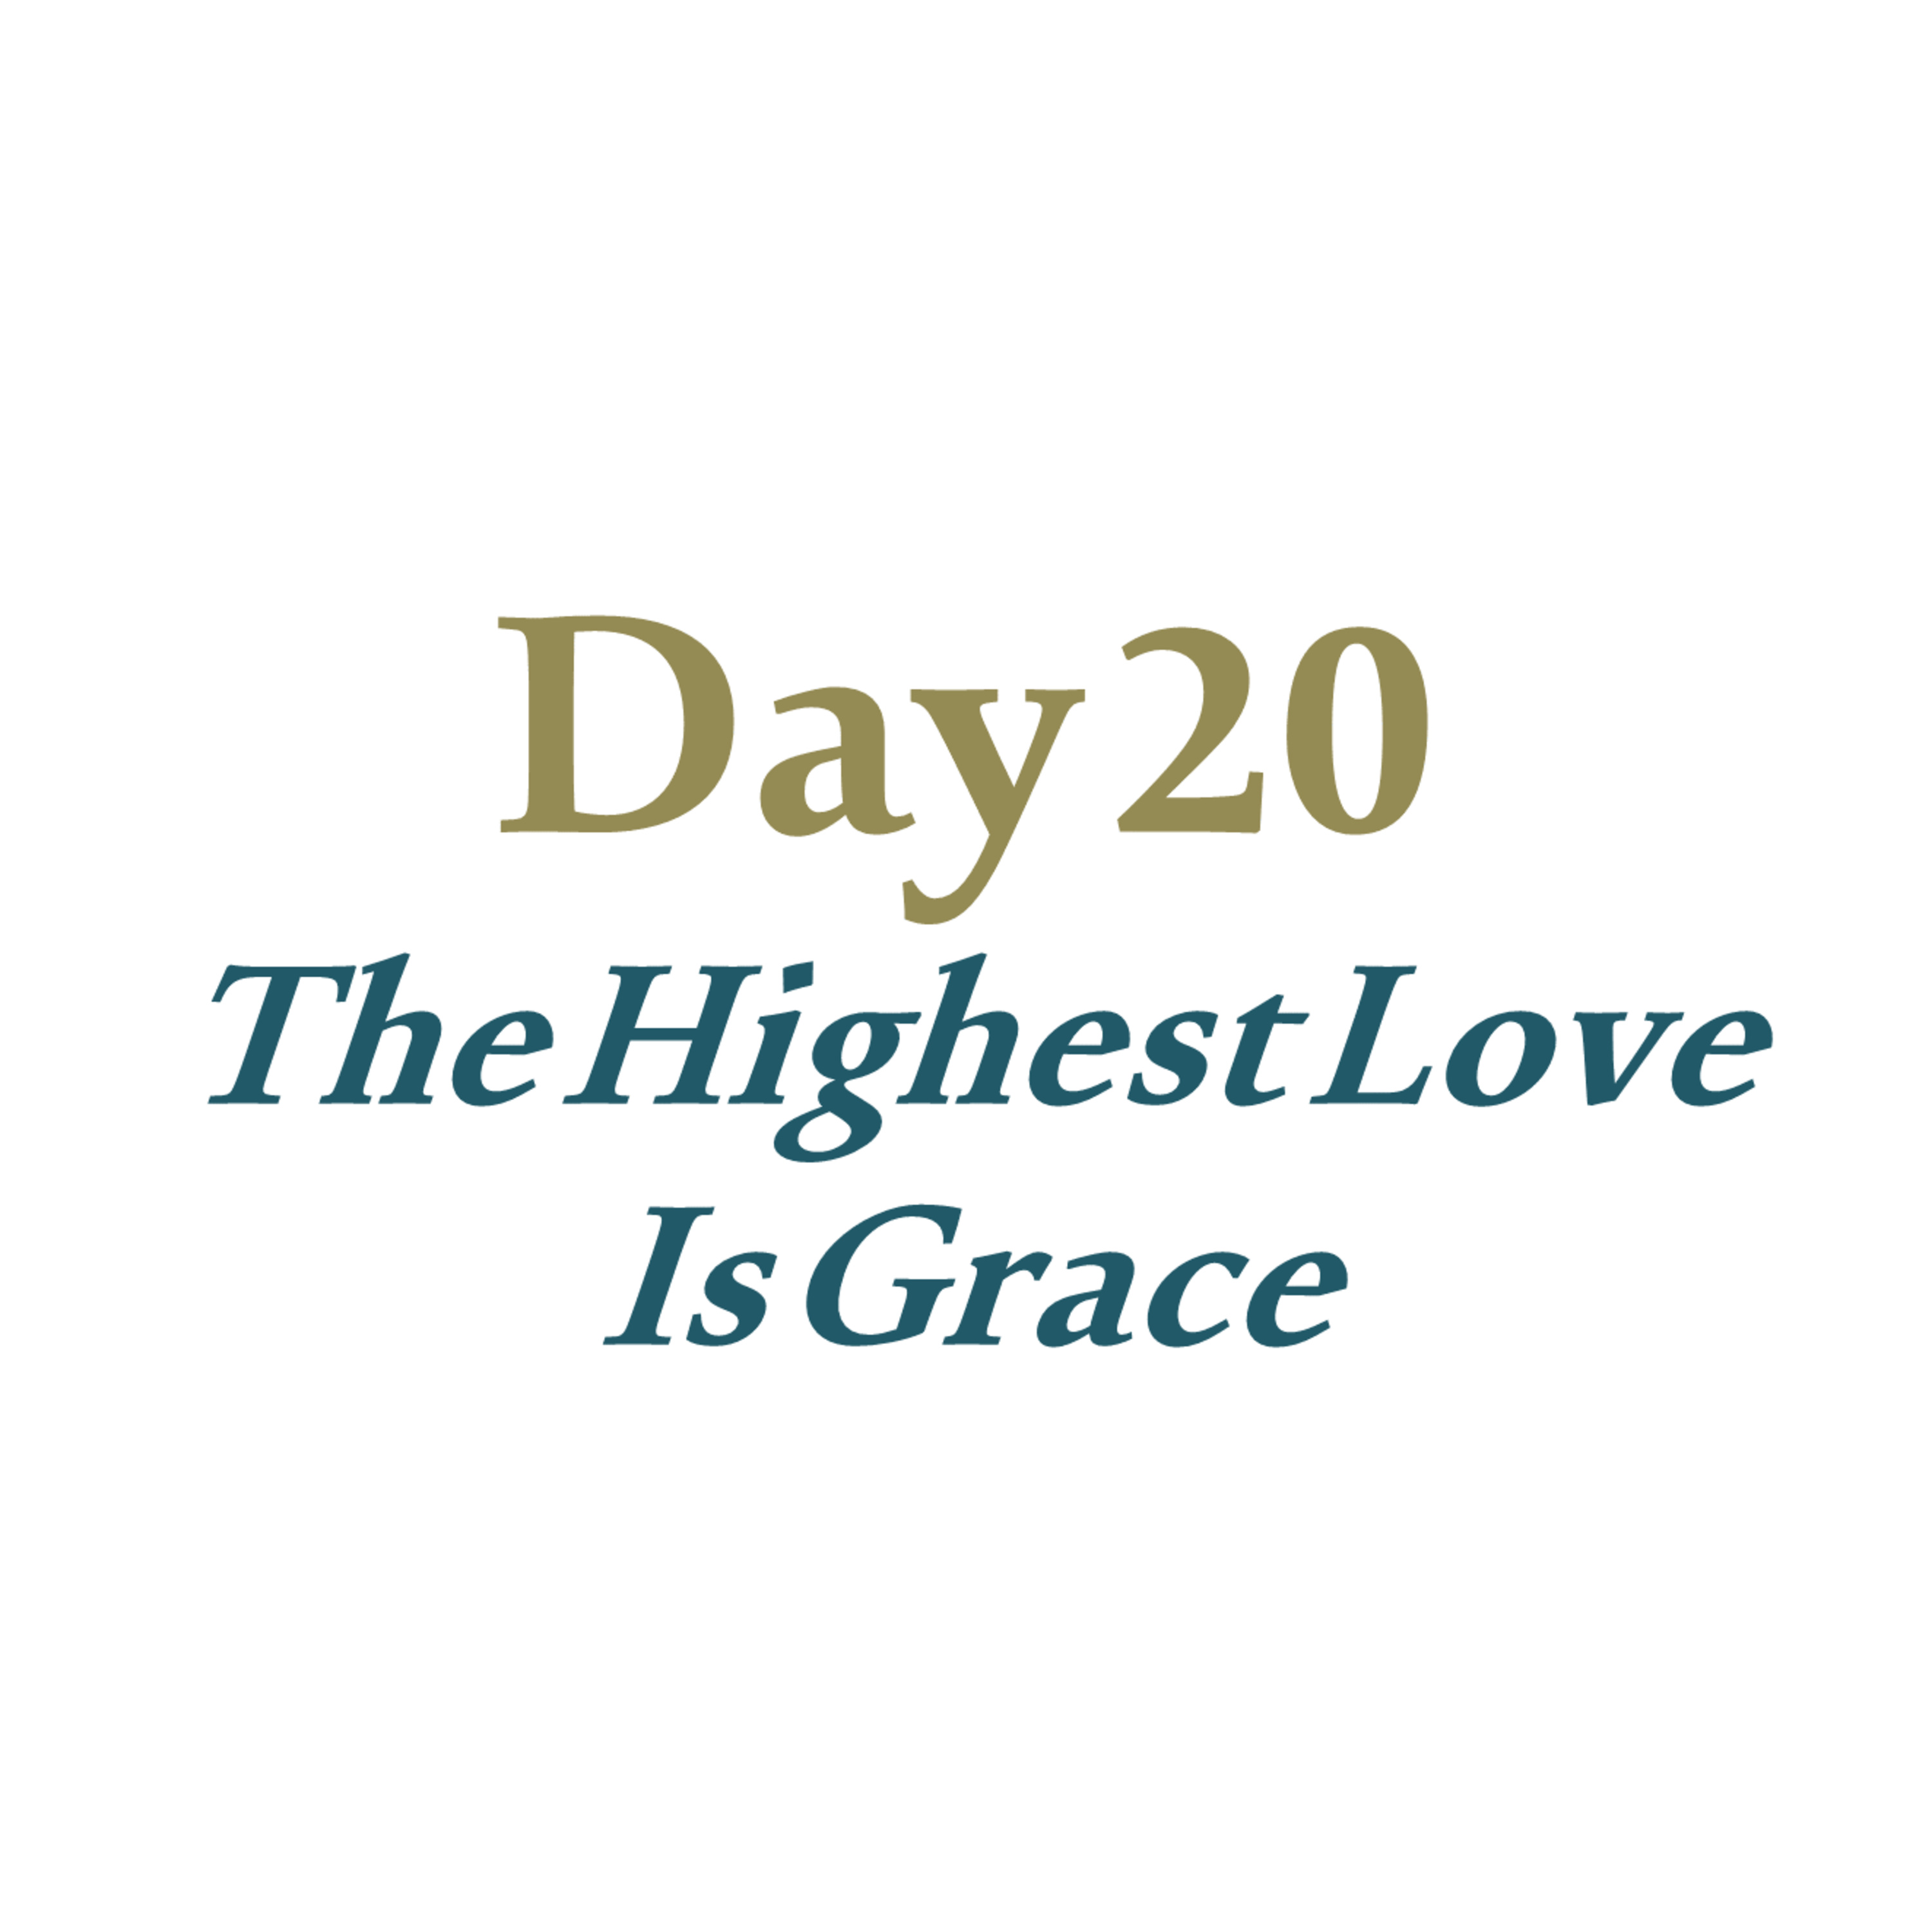 Day 20 - The Highest Love Is Grace